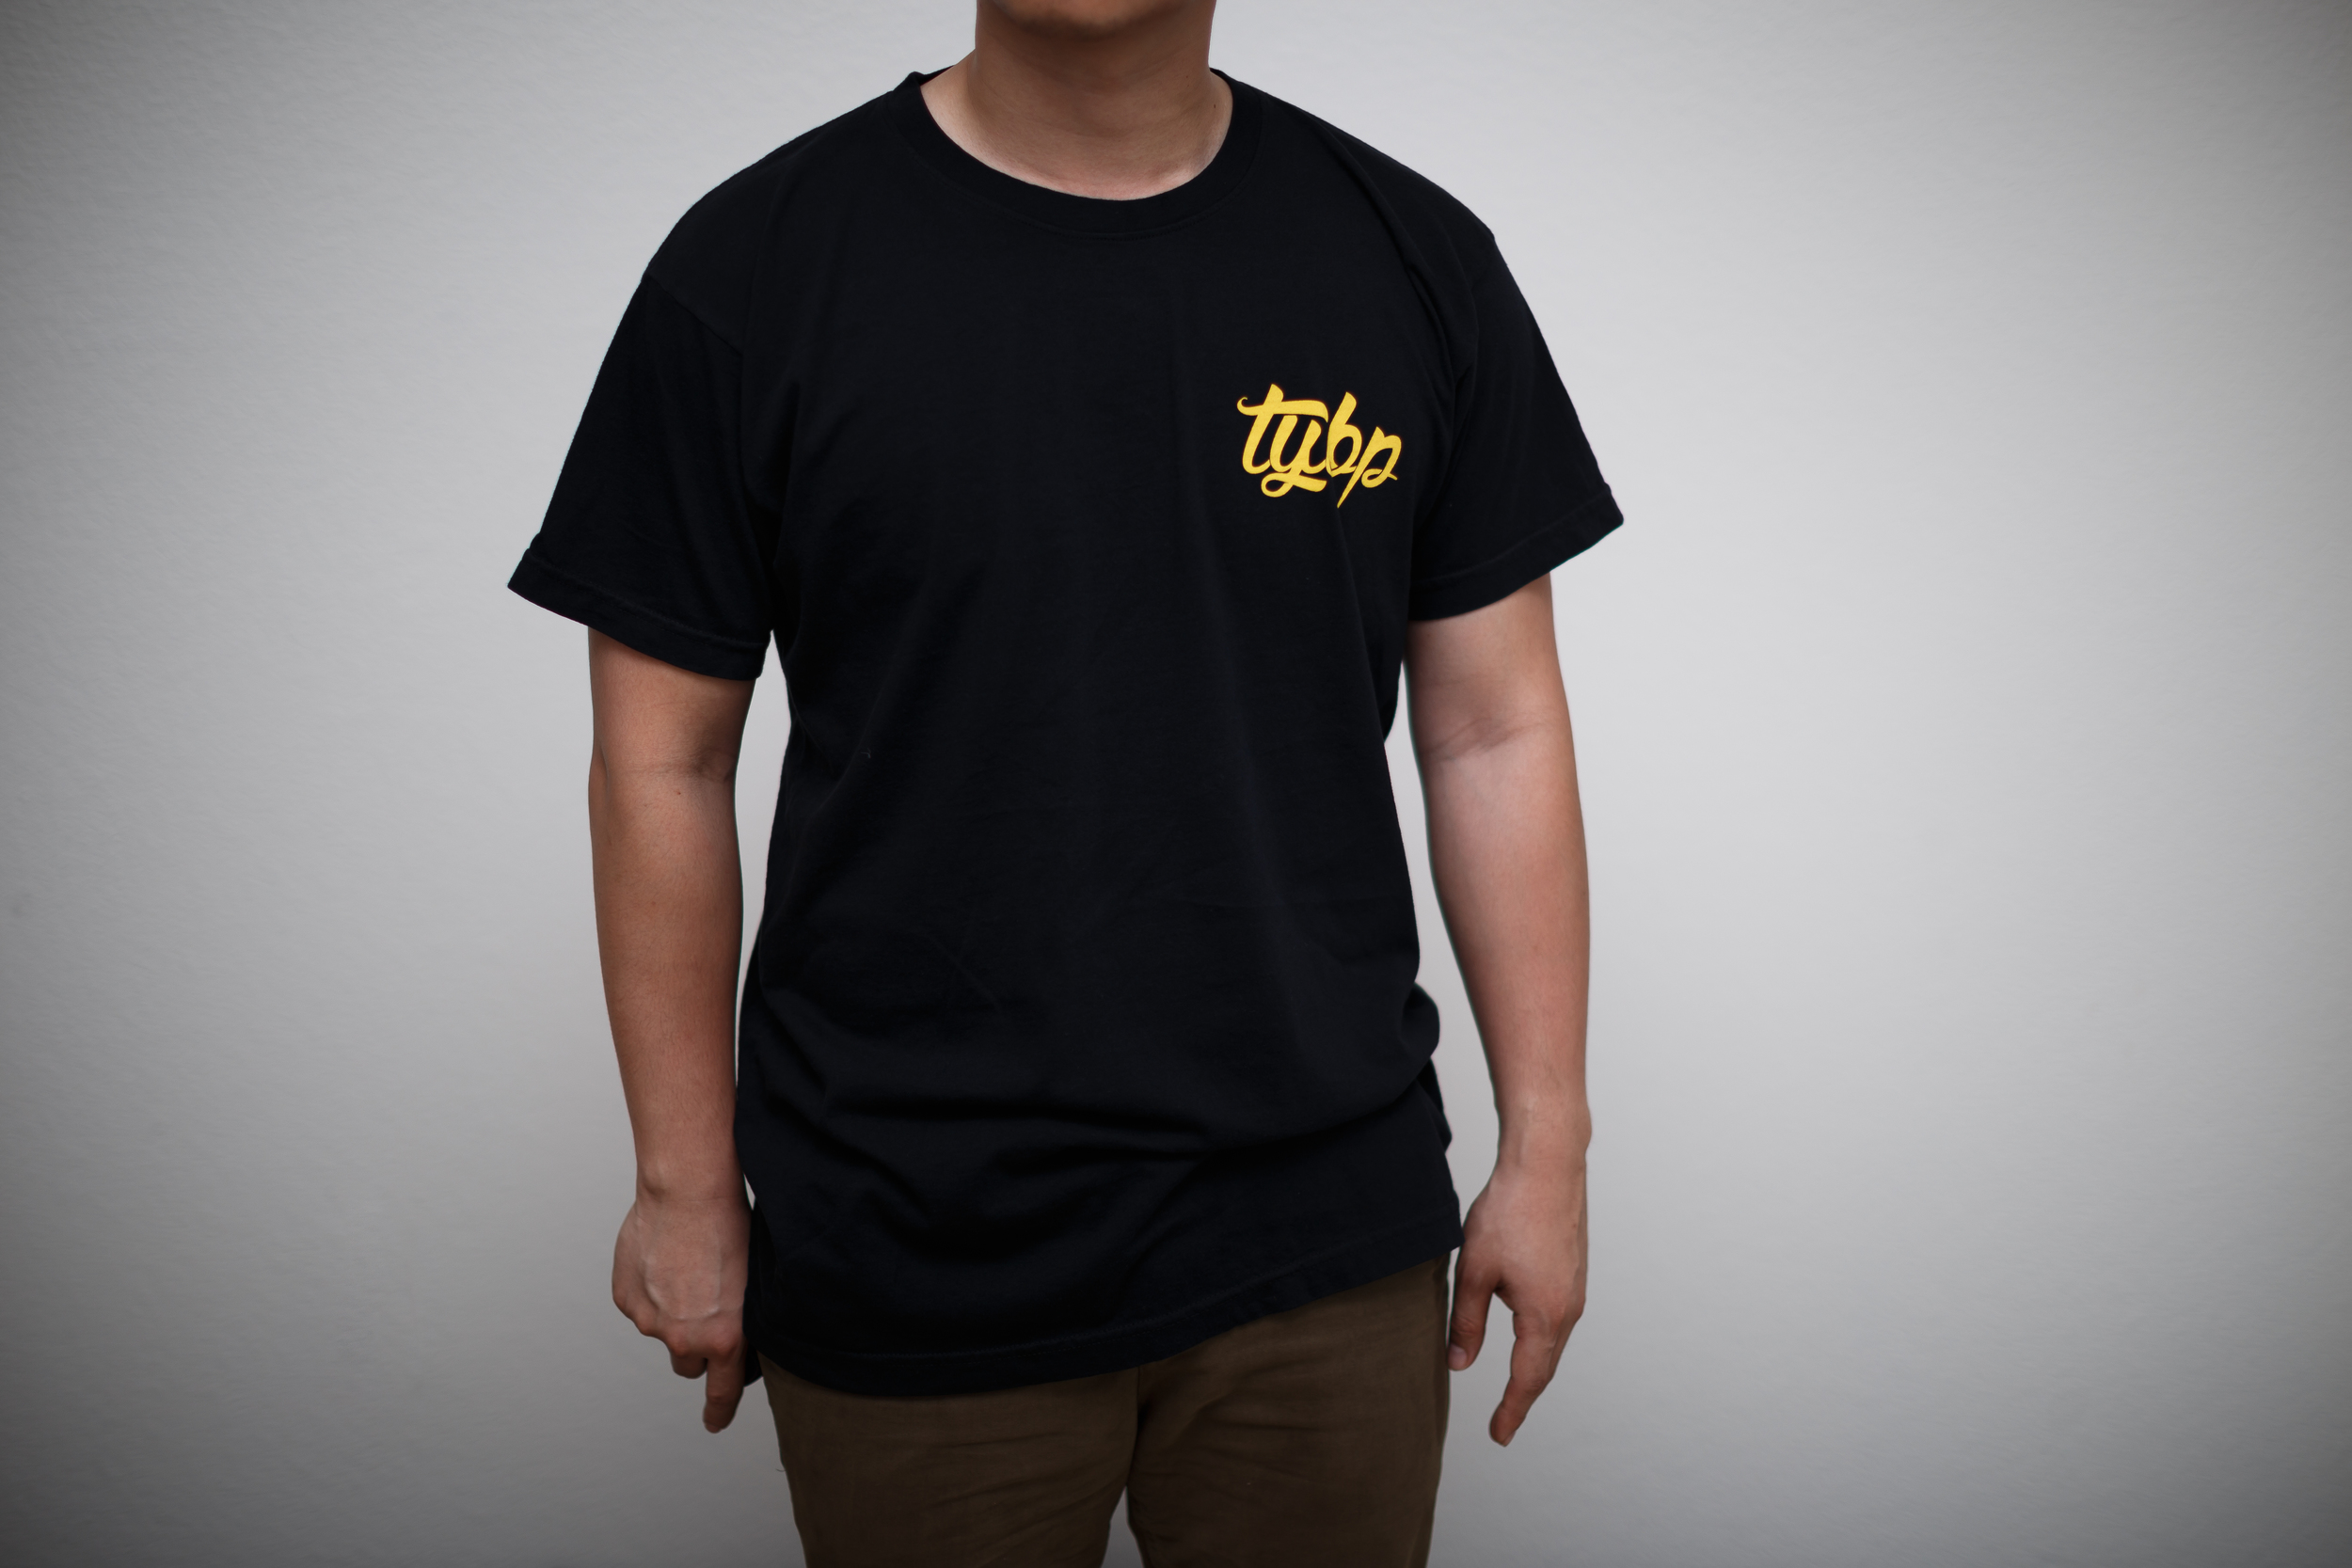 TYBP Shirt by The Pomp -- Thank You Based Pomp ThePomp Design